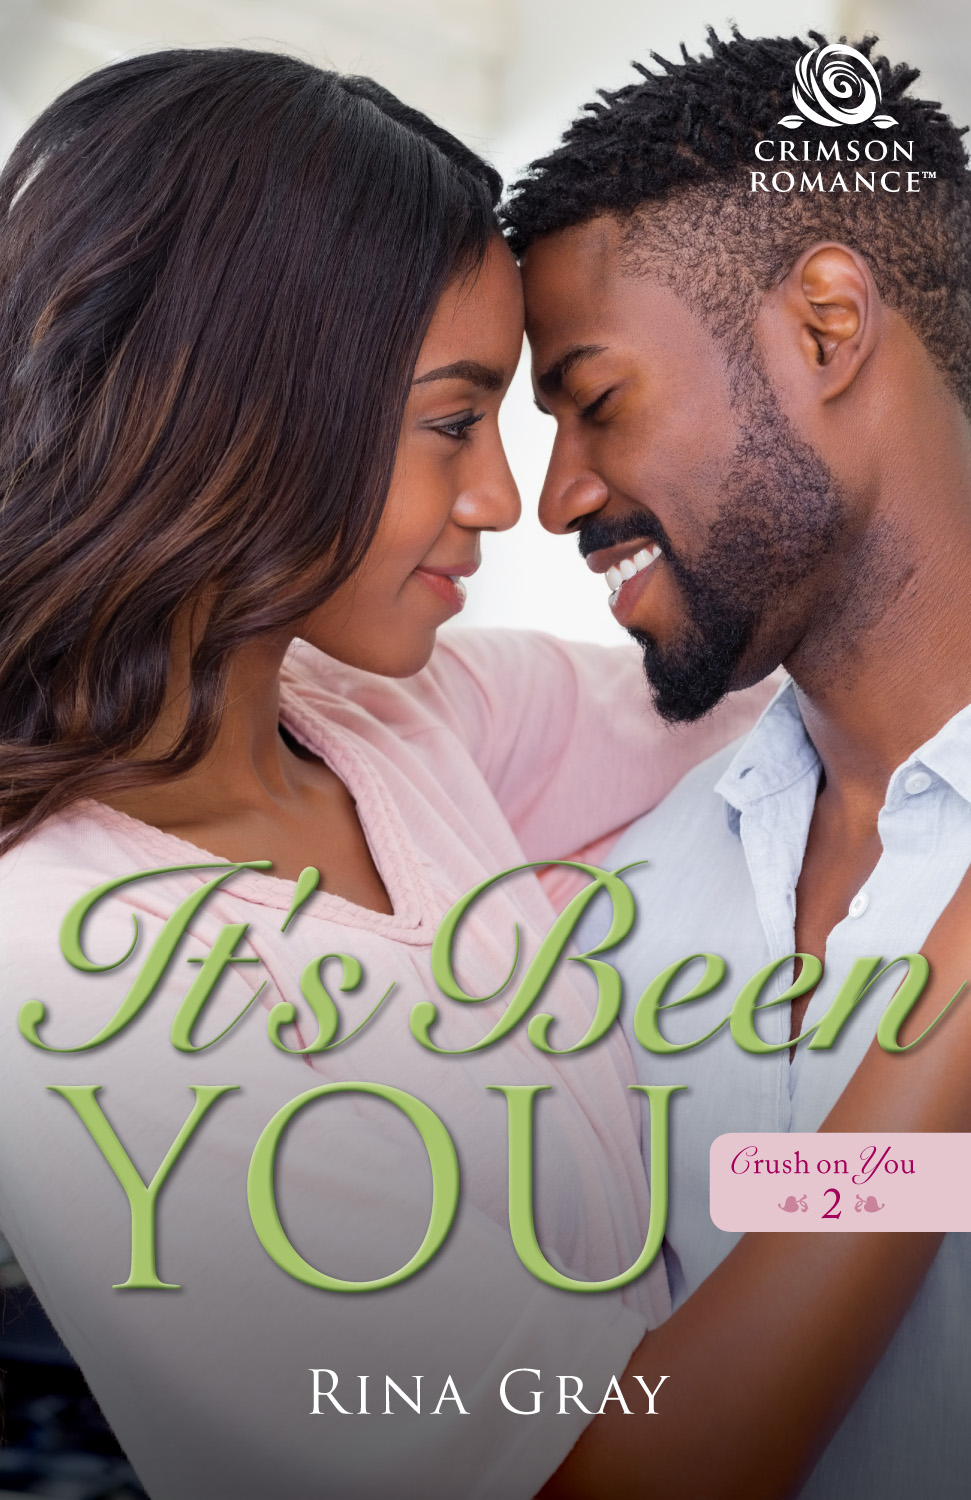 It's Been You by Rina Gray